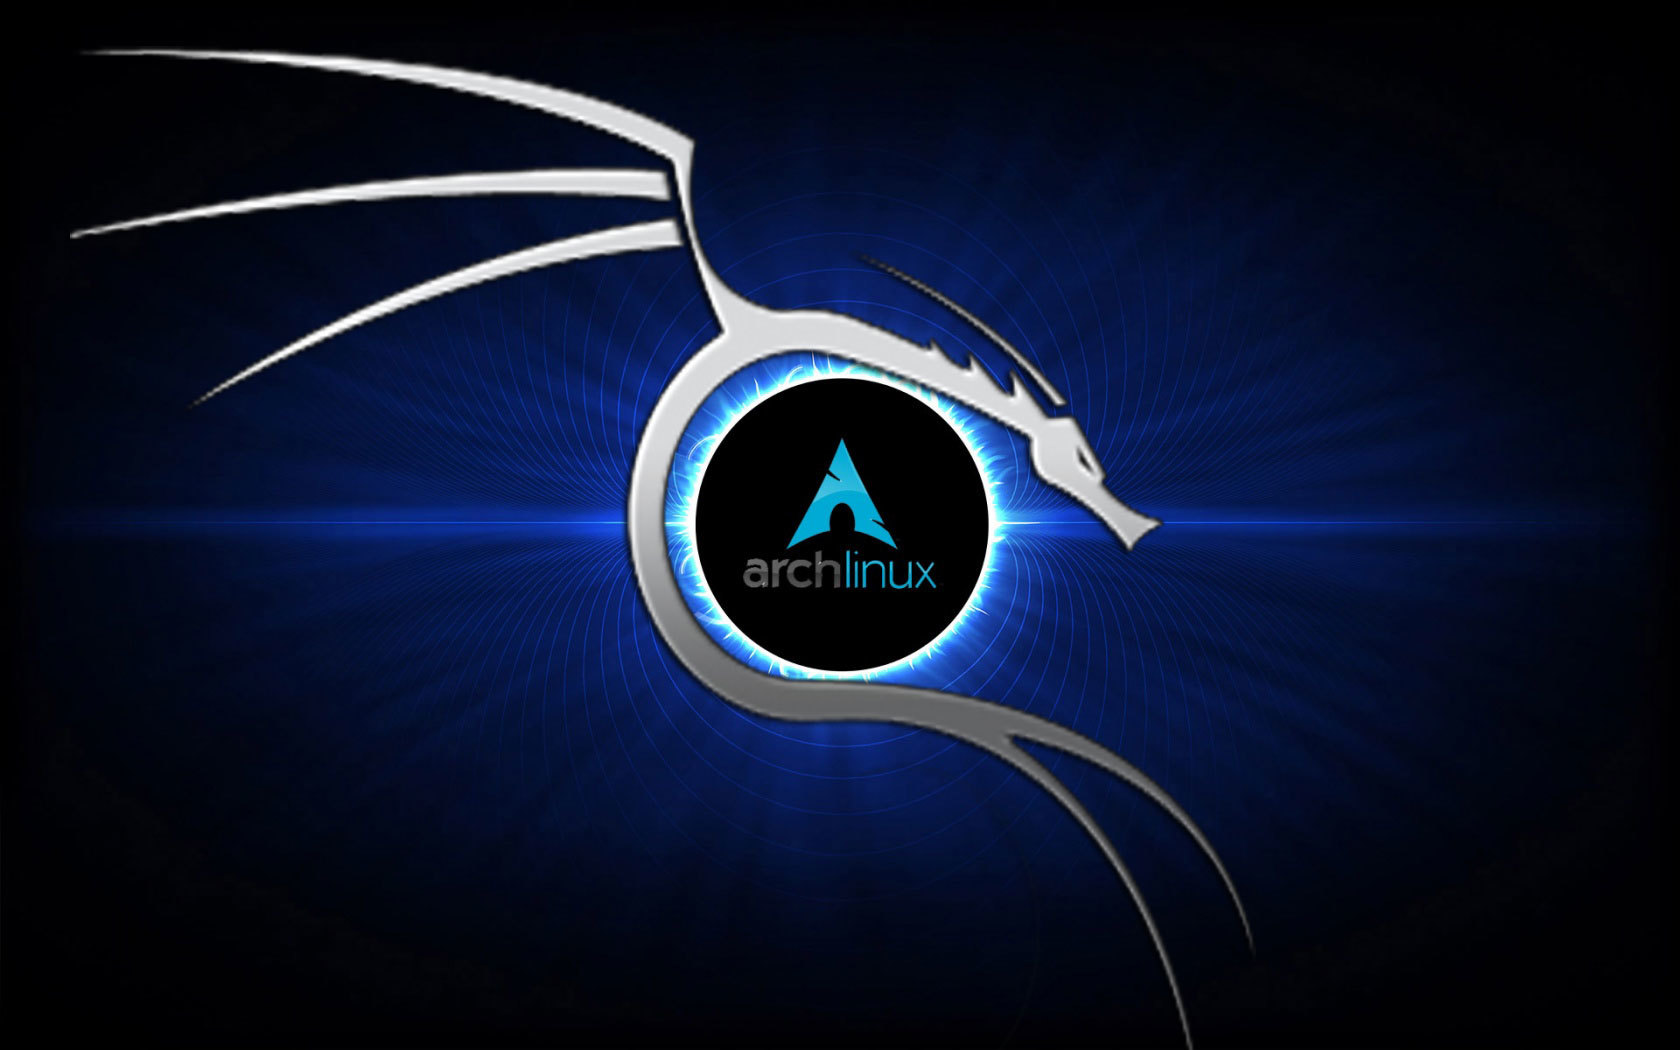 Linux arch linux HD Wallpaper